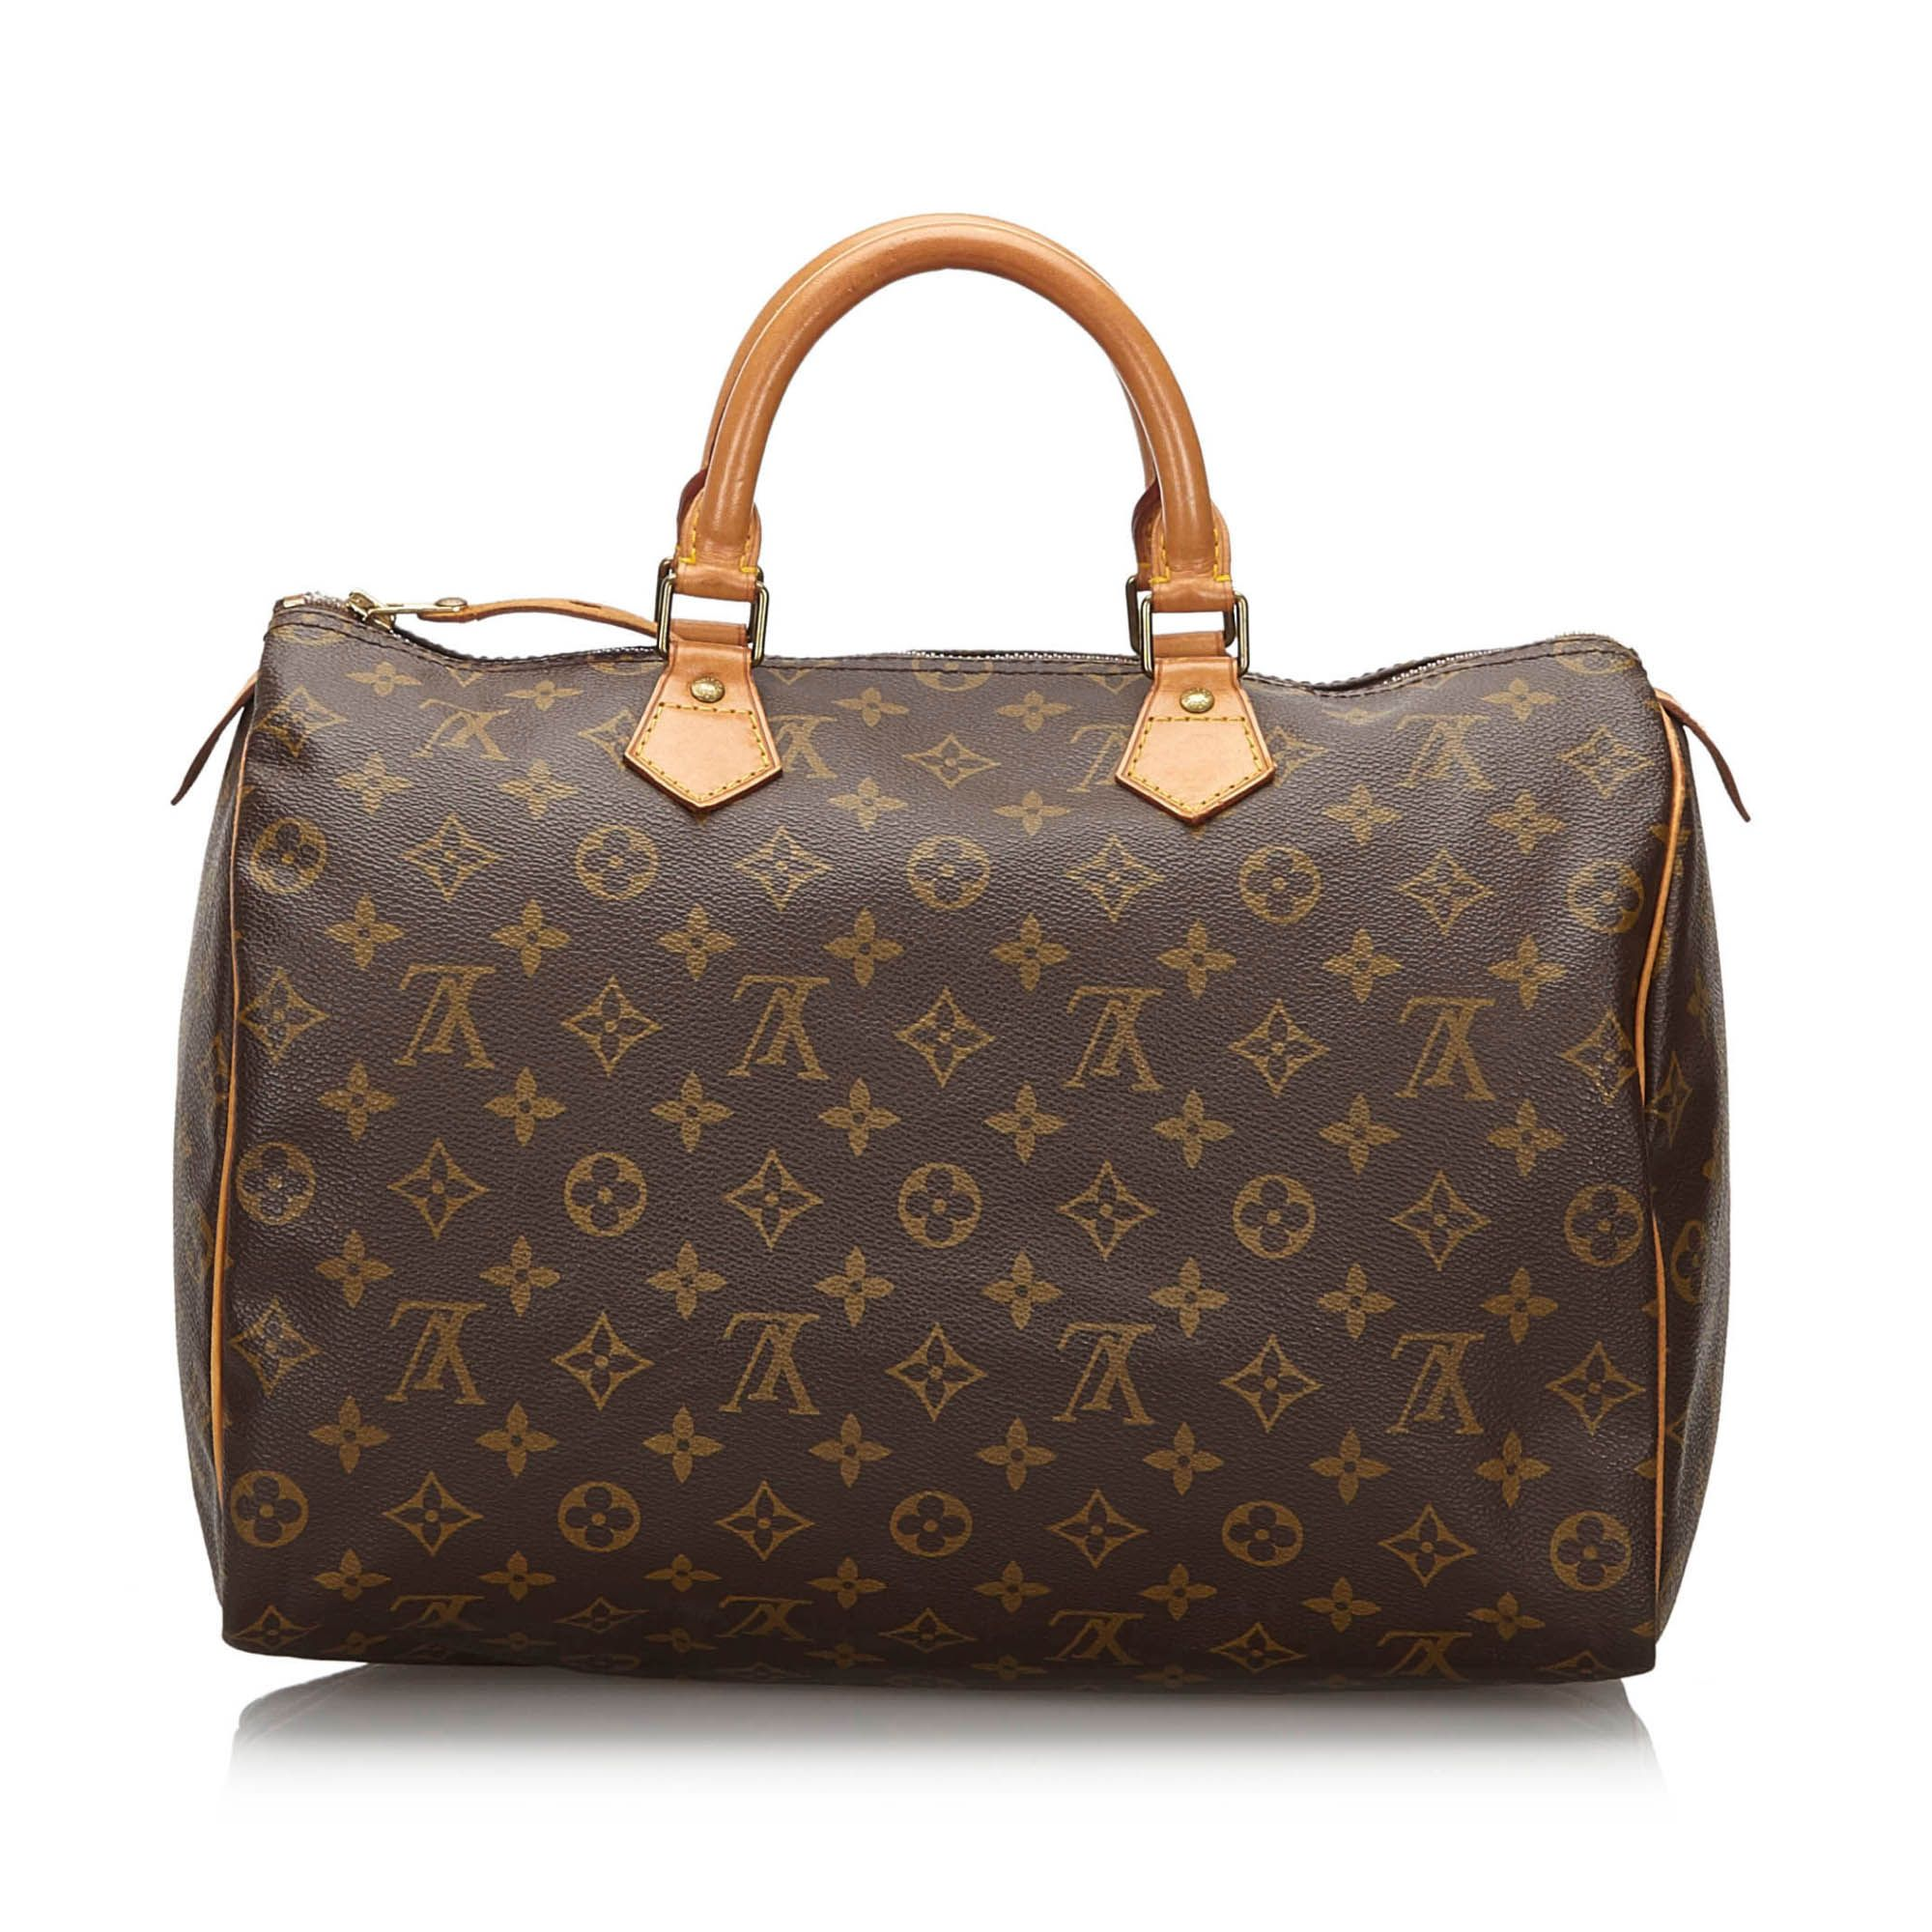 Vintage Louis Vuitton Monogram Speedy 35 Brown